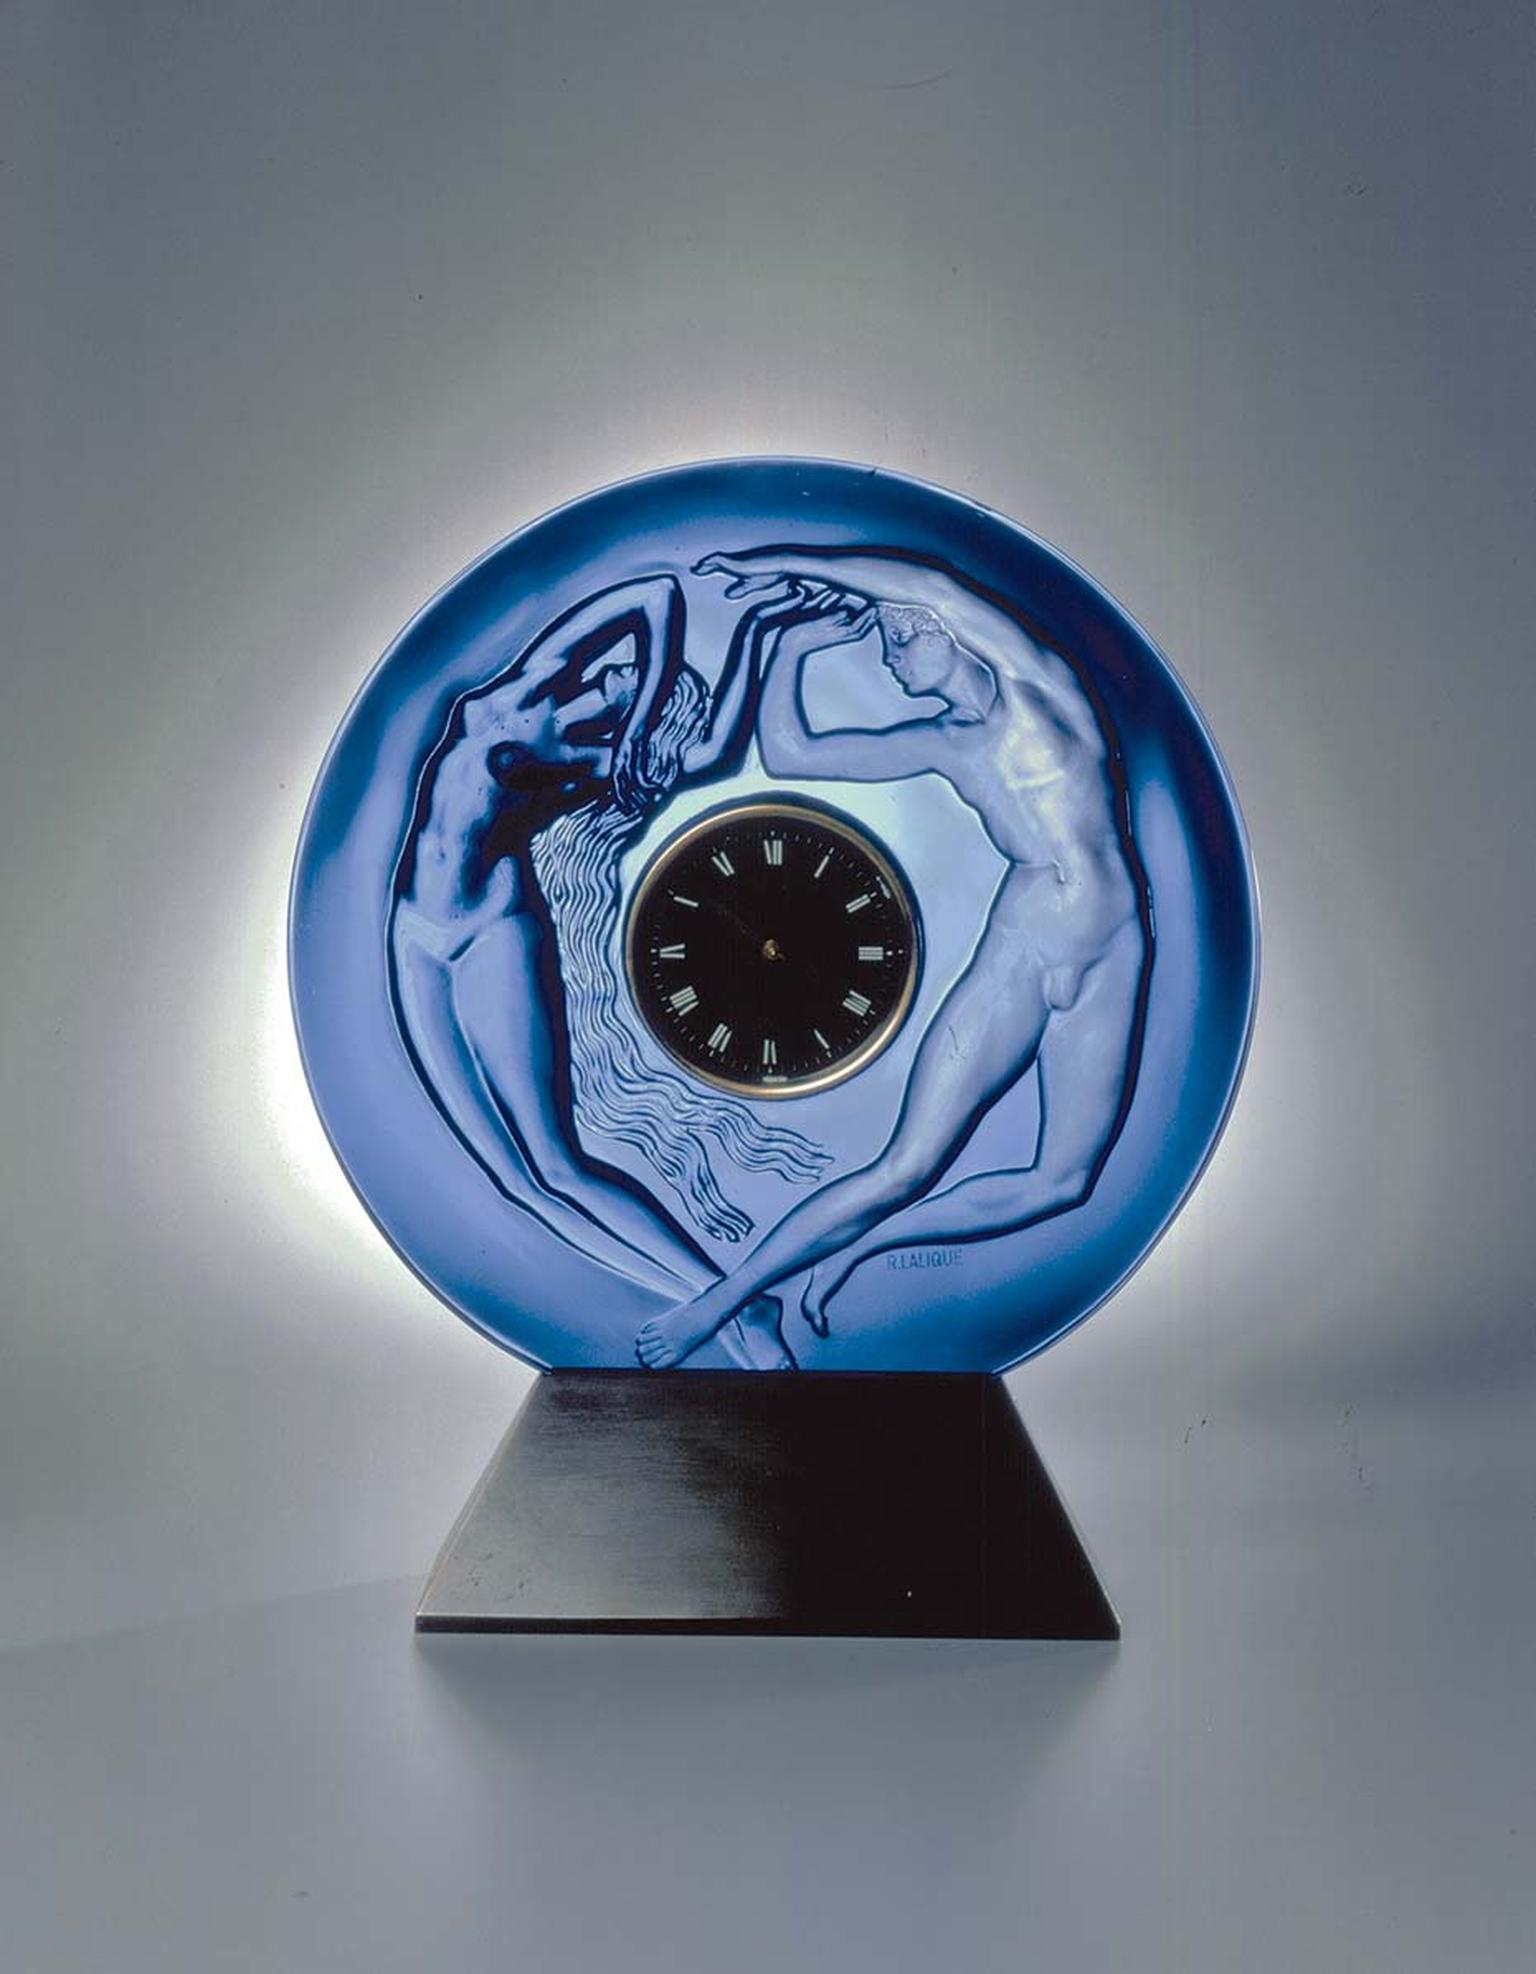 René Lalique's original Le Jour et la Nuit table clock of 1926 depicts a woman in relief on polished glass (night) and a man in counter-relief on satin-finished glass (day). The same mould has been used to create this new table clock, a collaboration betw